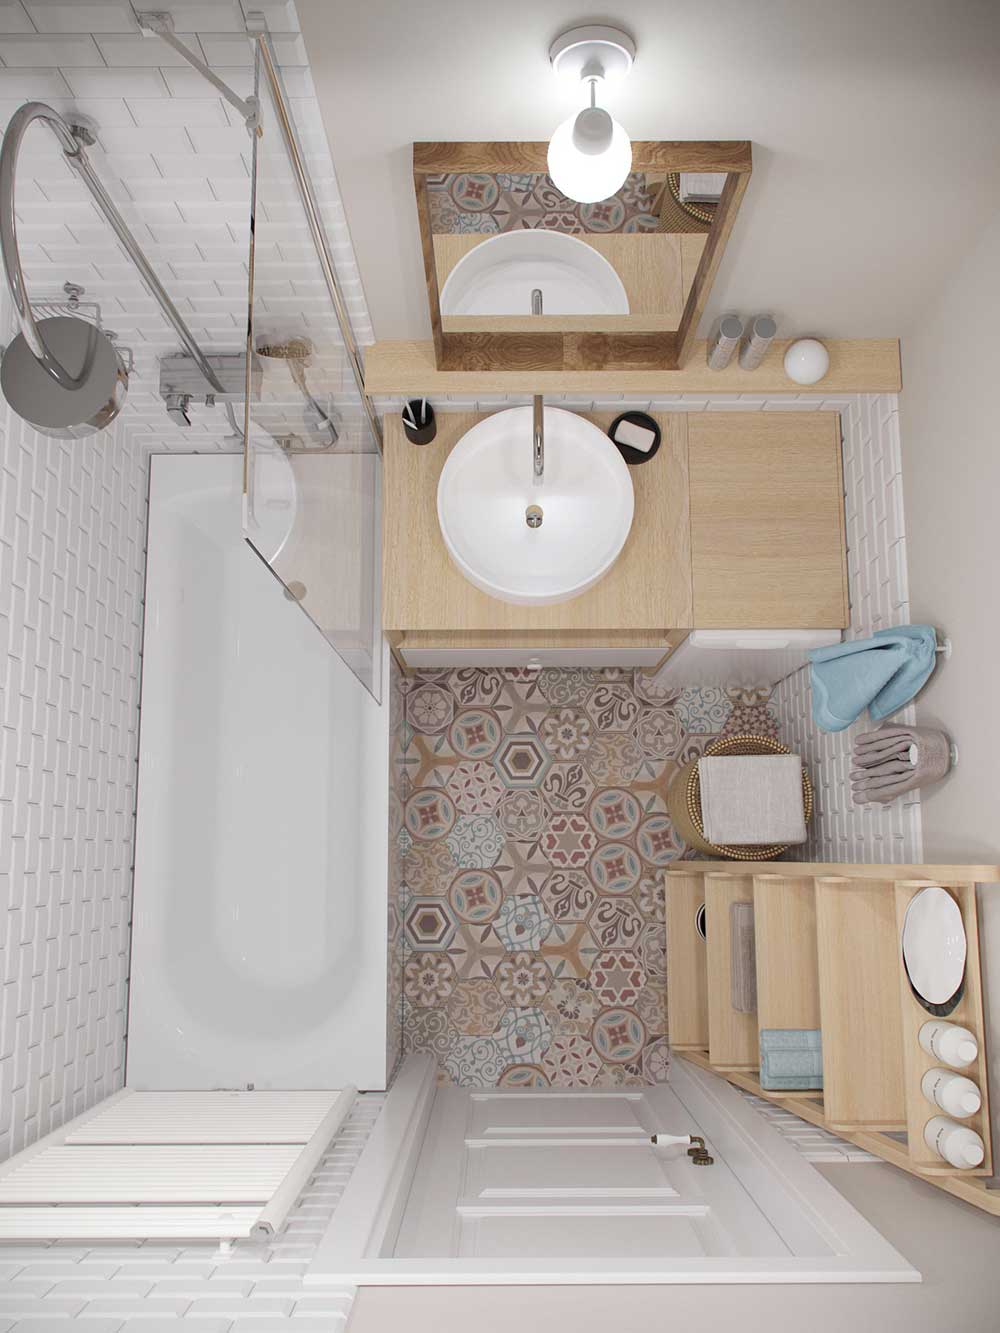 tiny apartment bathroom design jl - Amur Tiny Apartment Design